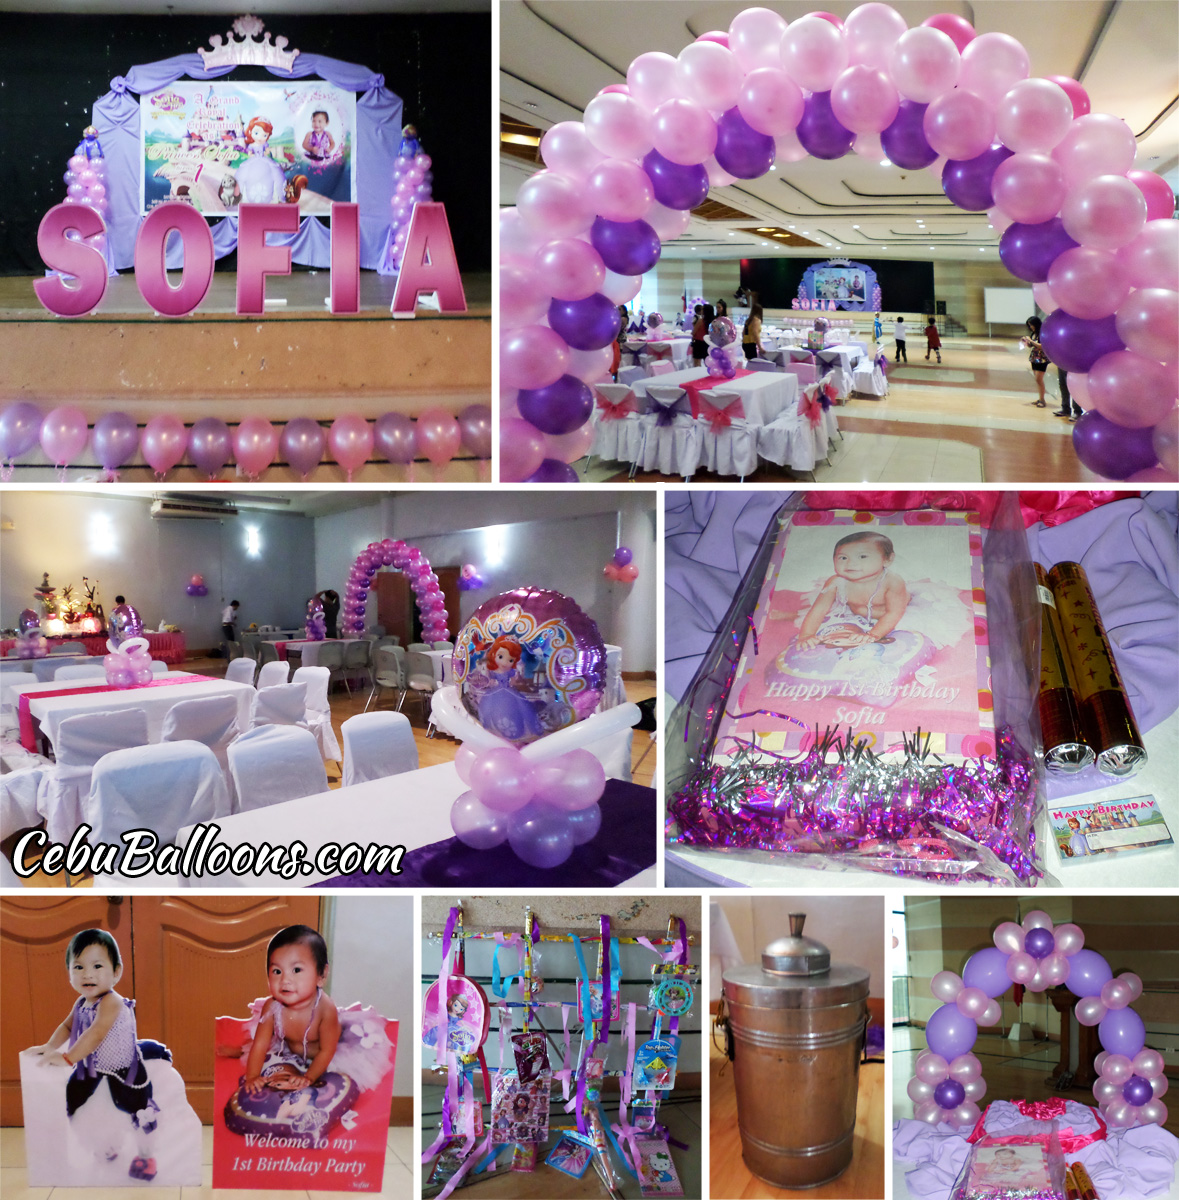 Sofia The First Cebu Balloons And Party Supplies